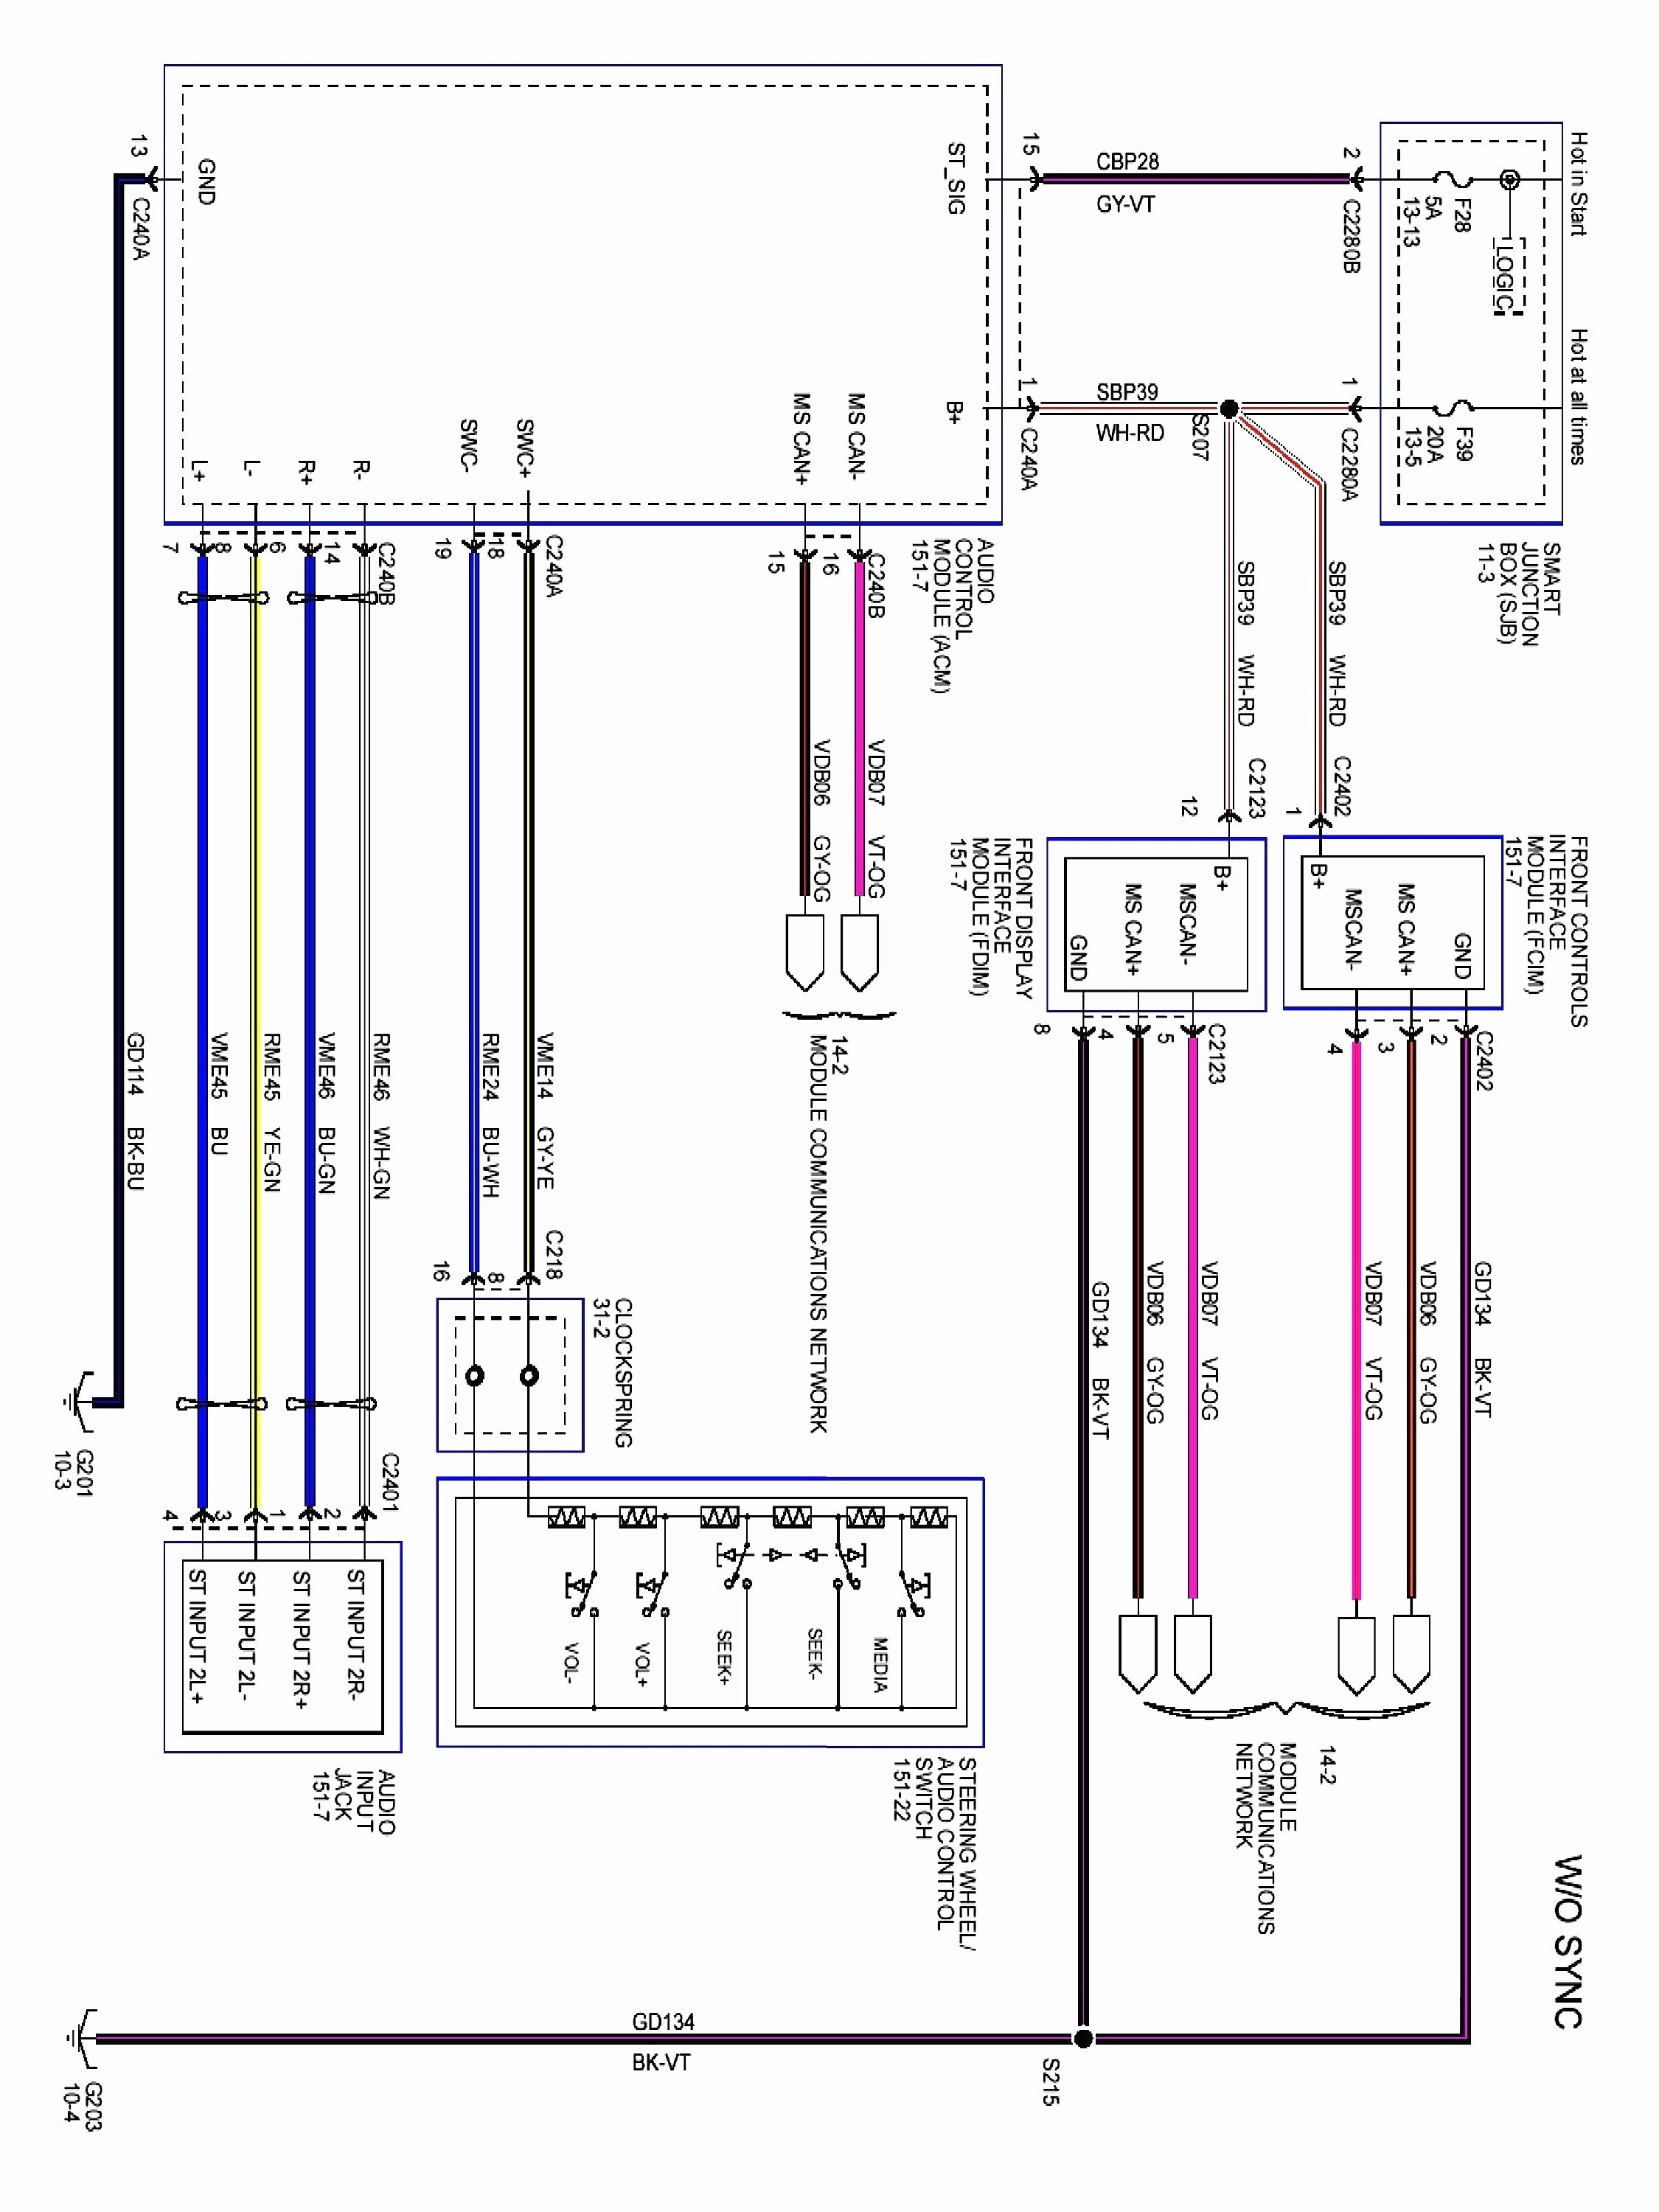 Wiring Diagram for Car Audio System New Wiring Diagram for Amplifier Car Stereo Best Amplifier Wiring